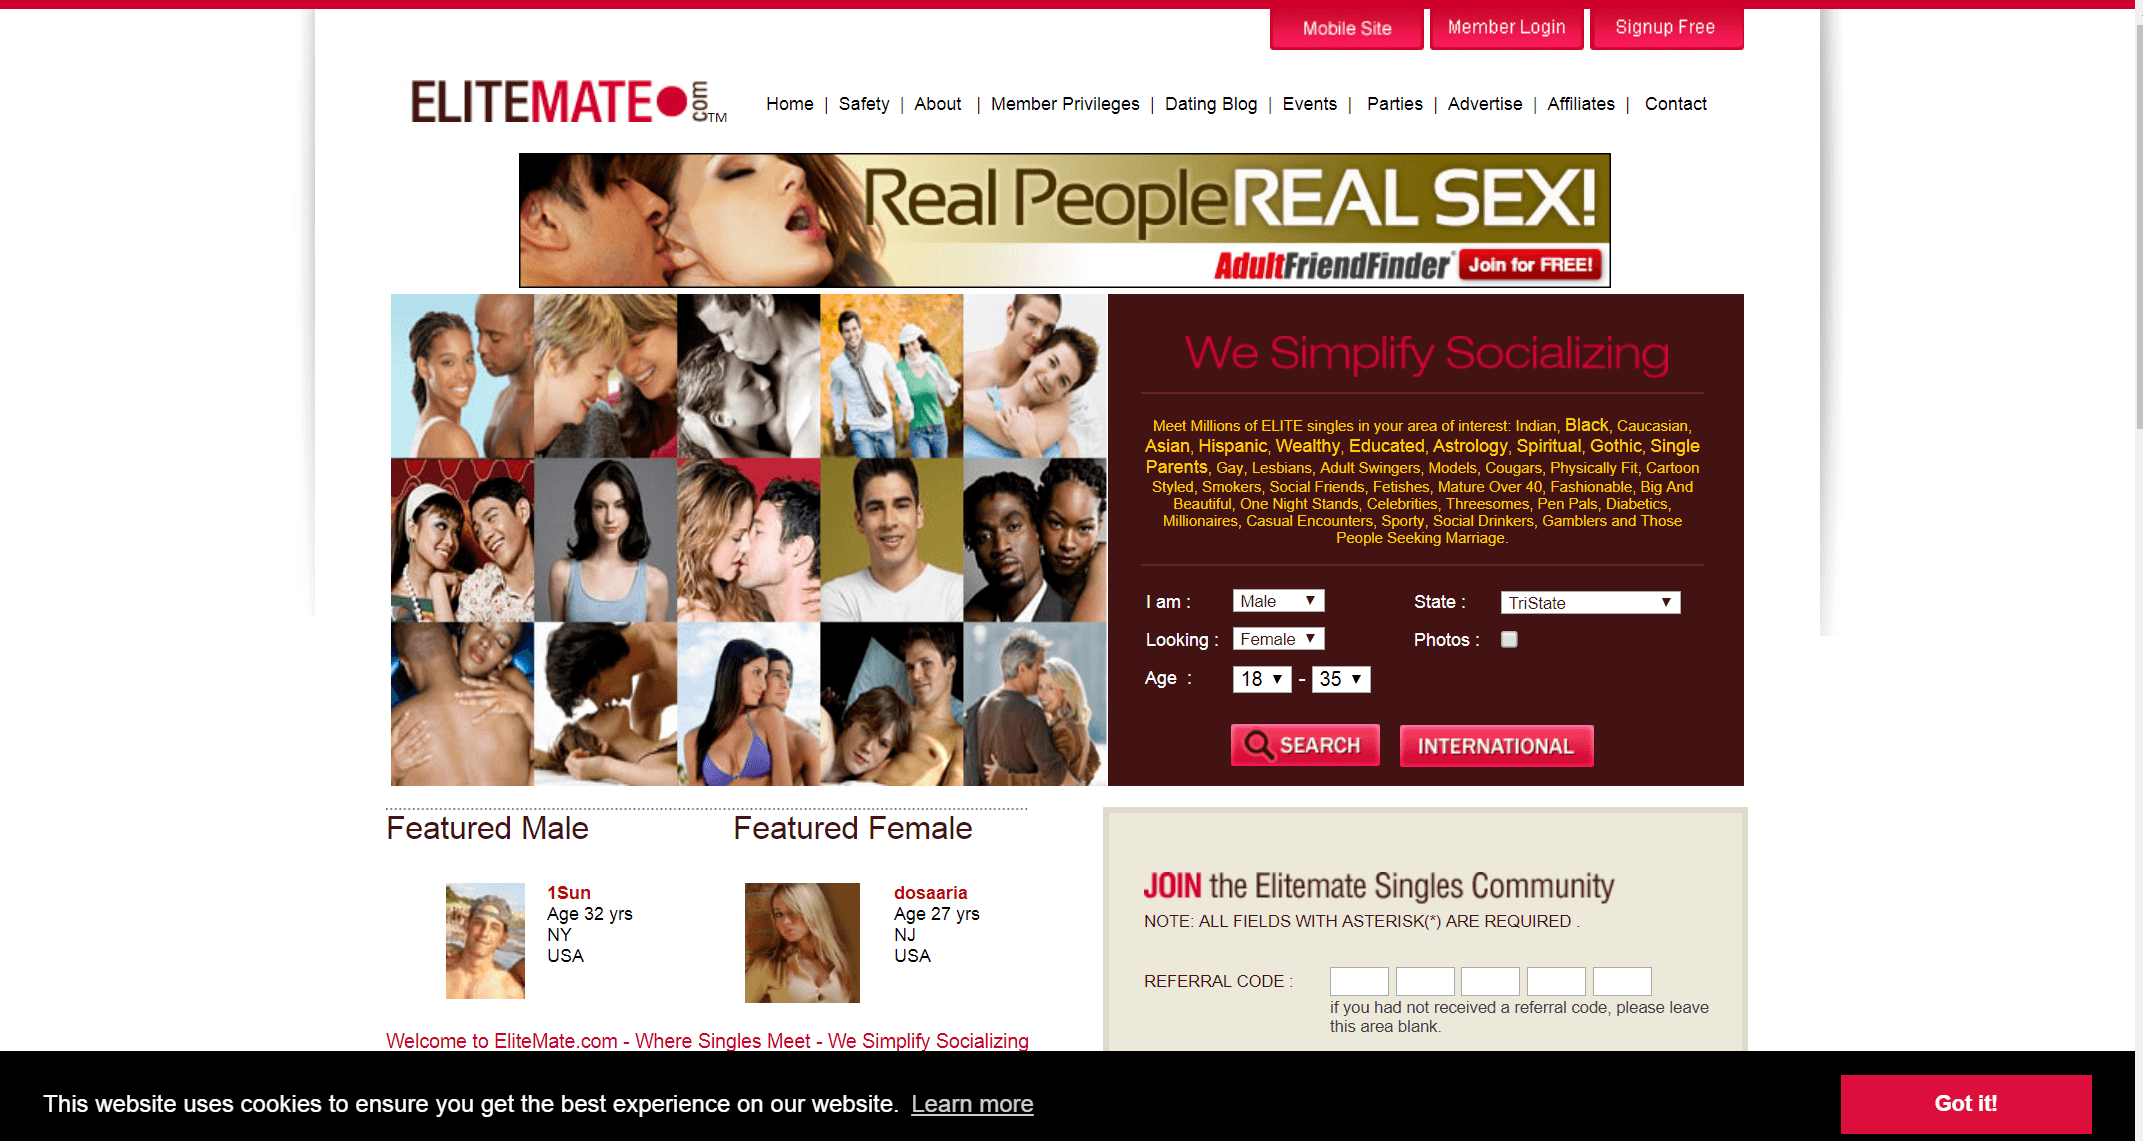 EliteMate Review - One of the Worst Dating Sites Ever